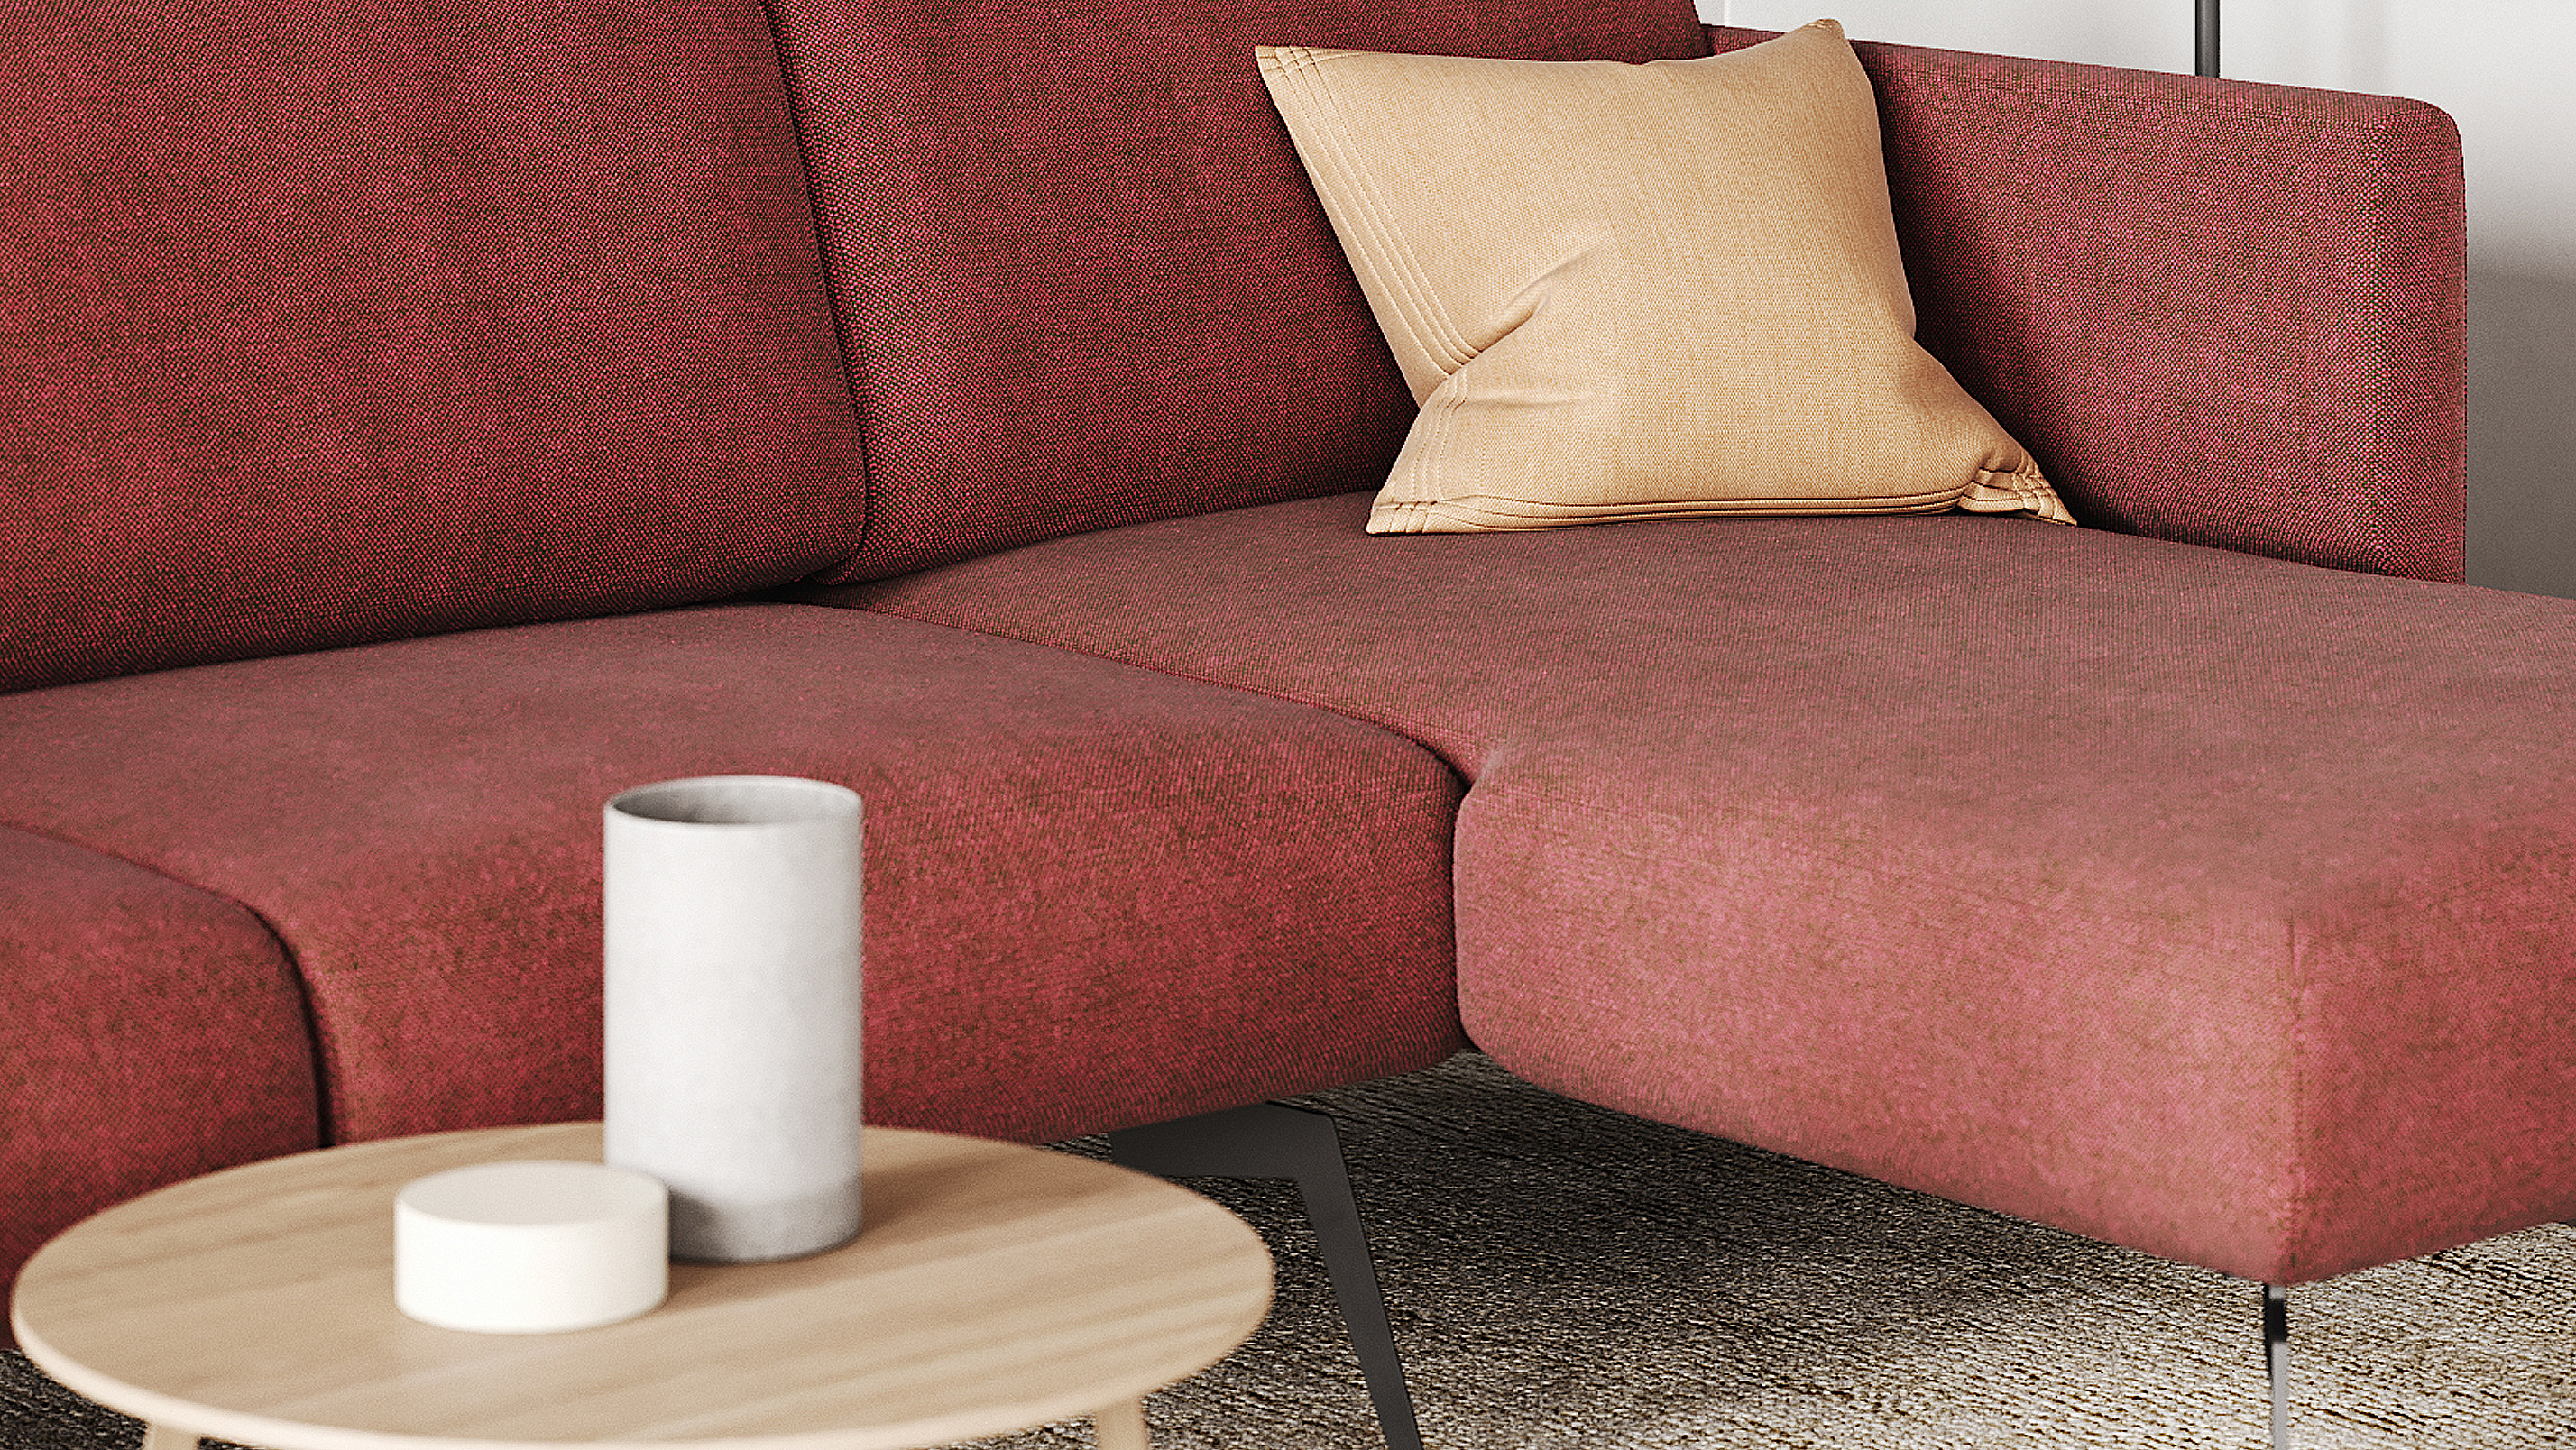 Close-up photo of the sofa Adele in rusty red color.